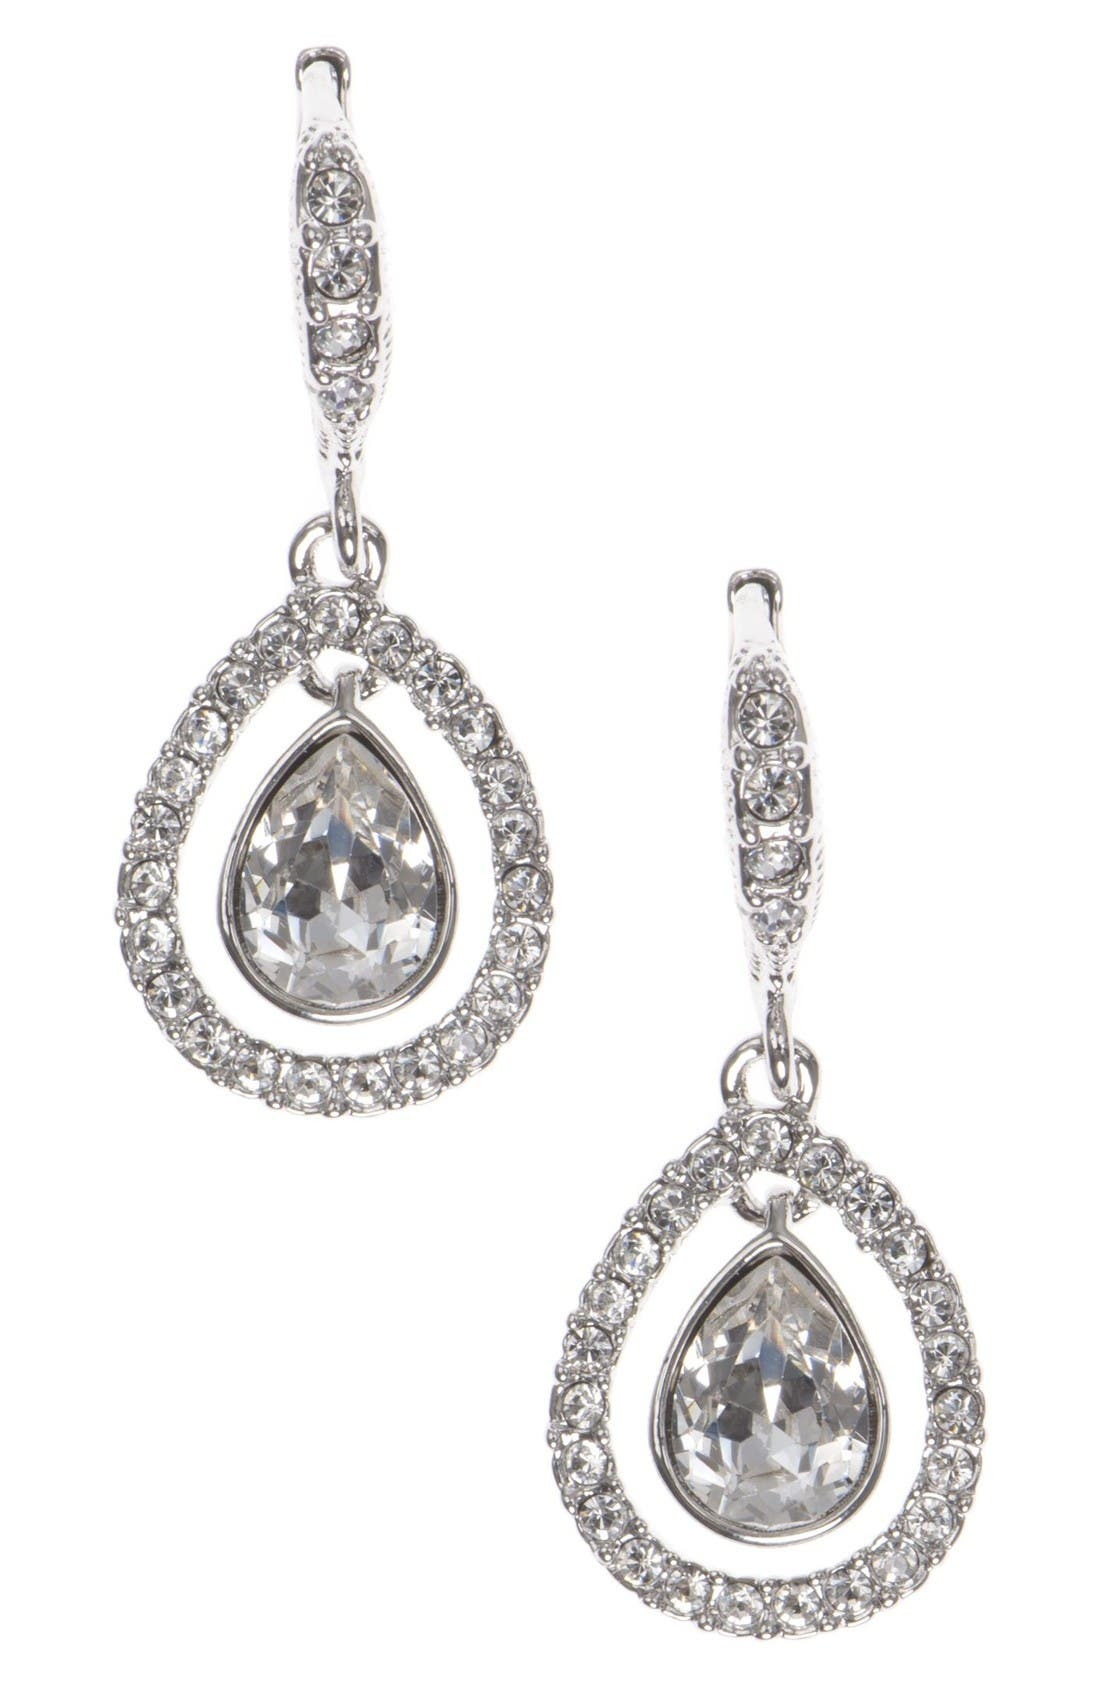 Crystal Drop Earrings,                             Main thumbnail 1, color,                             Silver